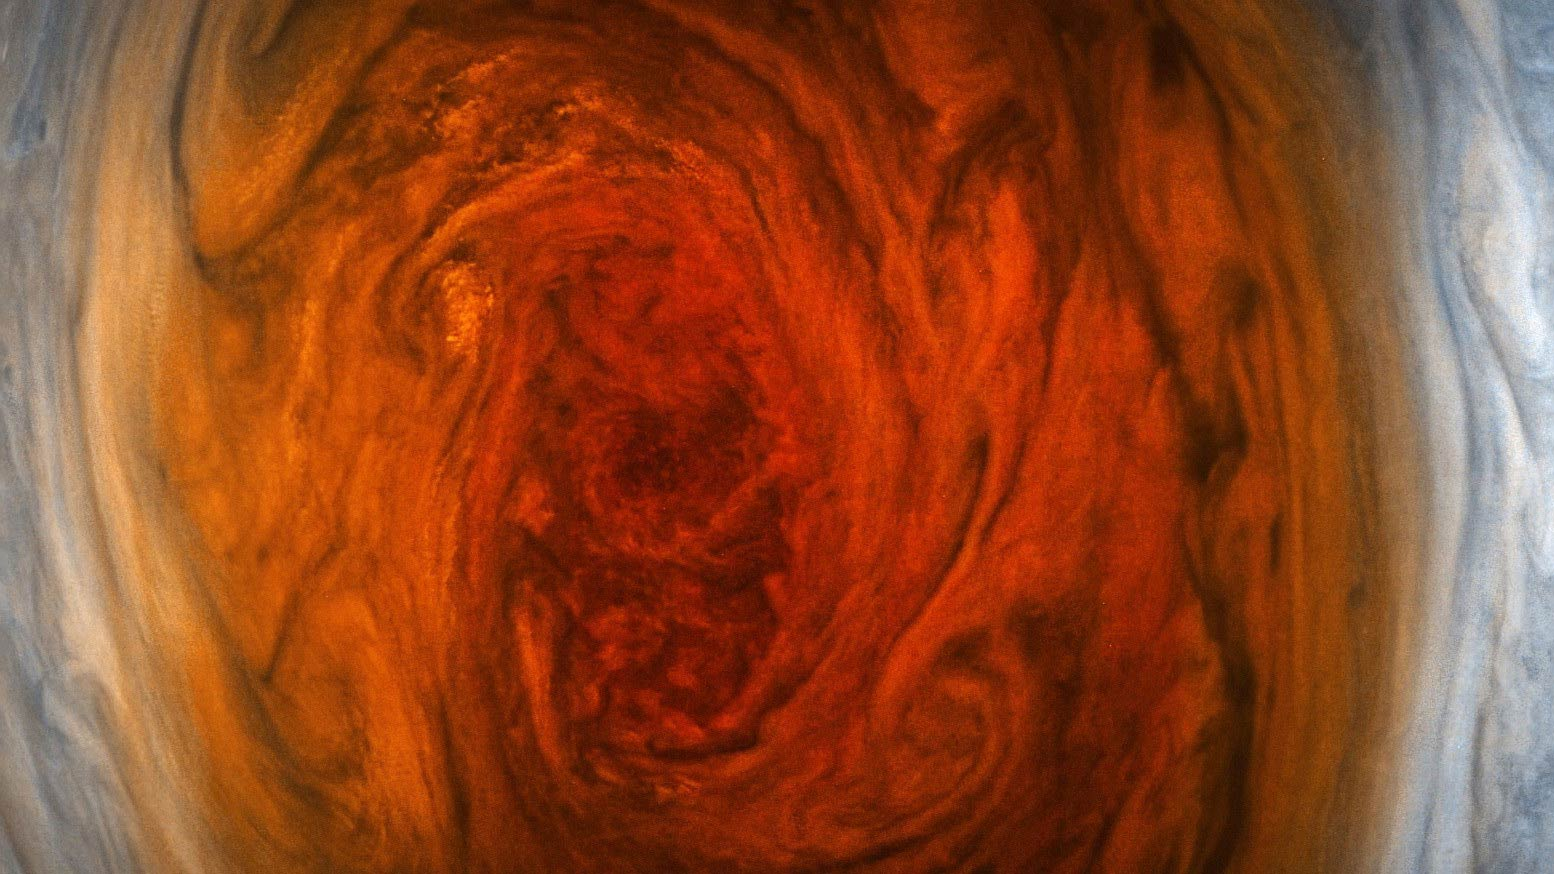 Jupiter's Great Red Spot imaged July 10, 2017.